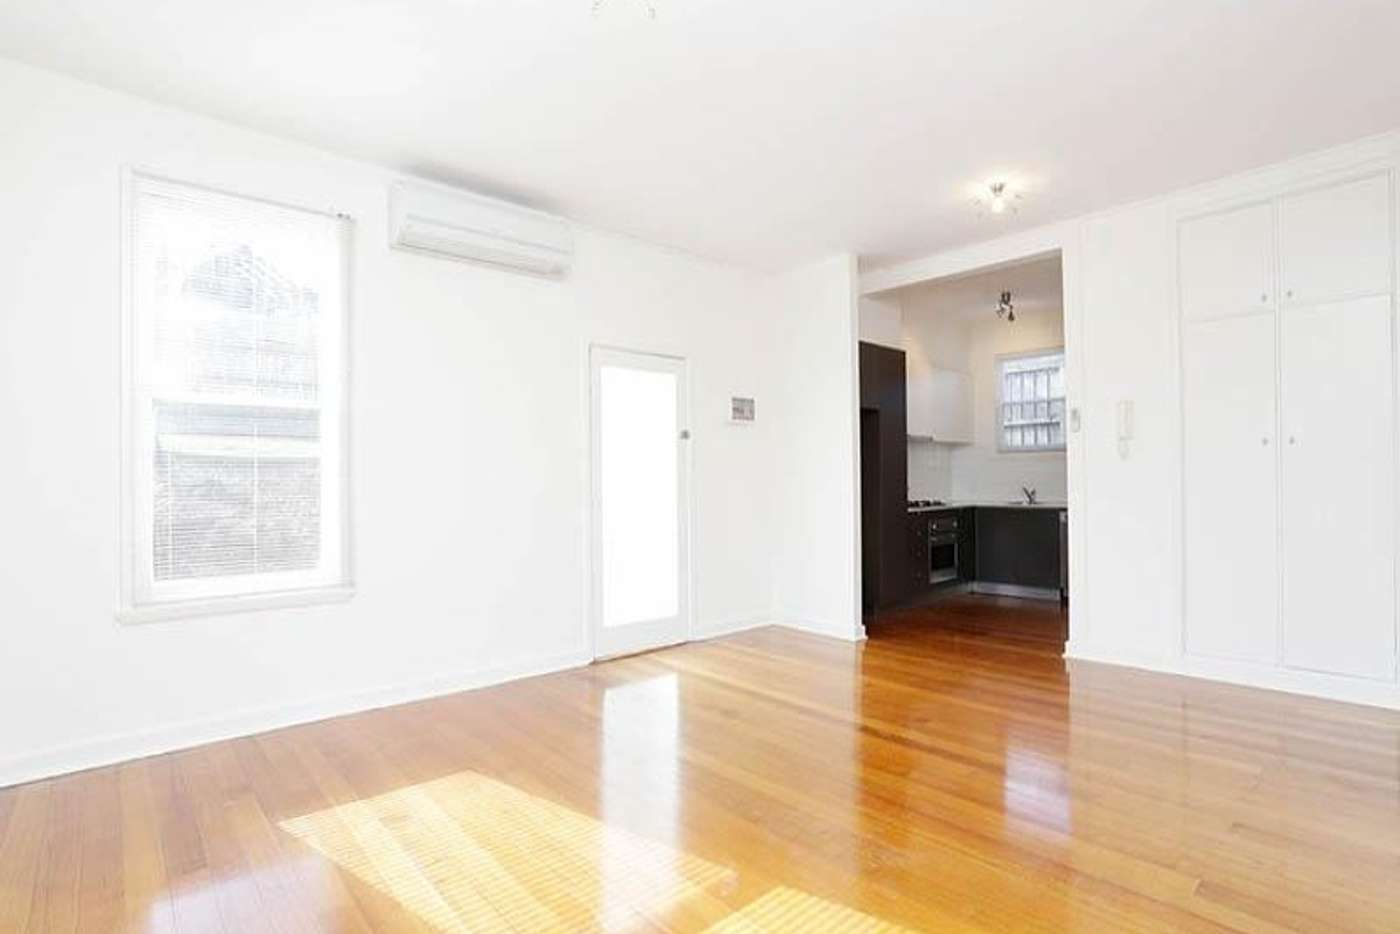 Main view of Homely townhouse listing, 19/3 Bickleigh Street, Glen Iris VIC 3146